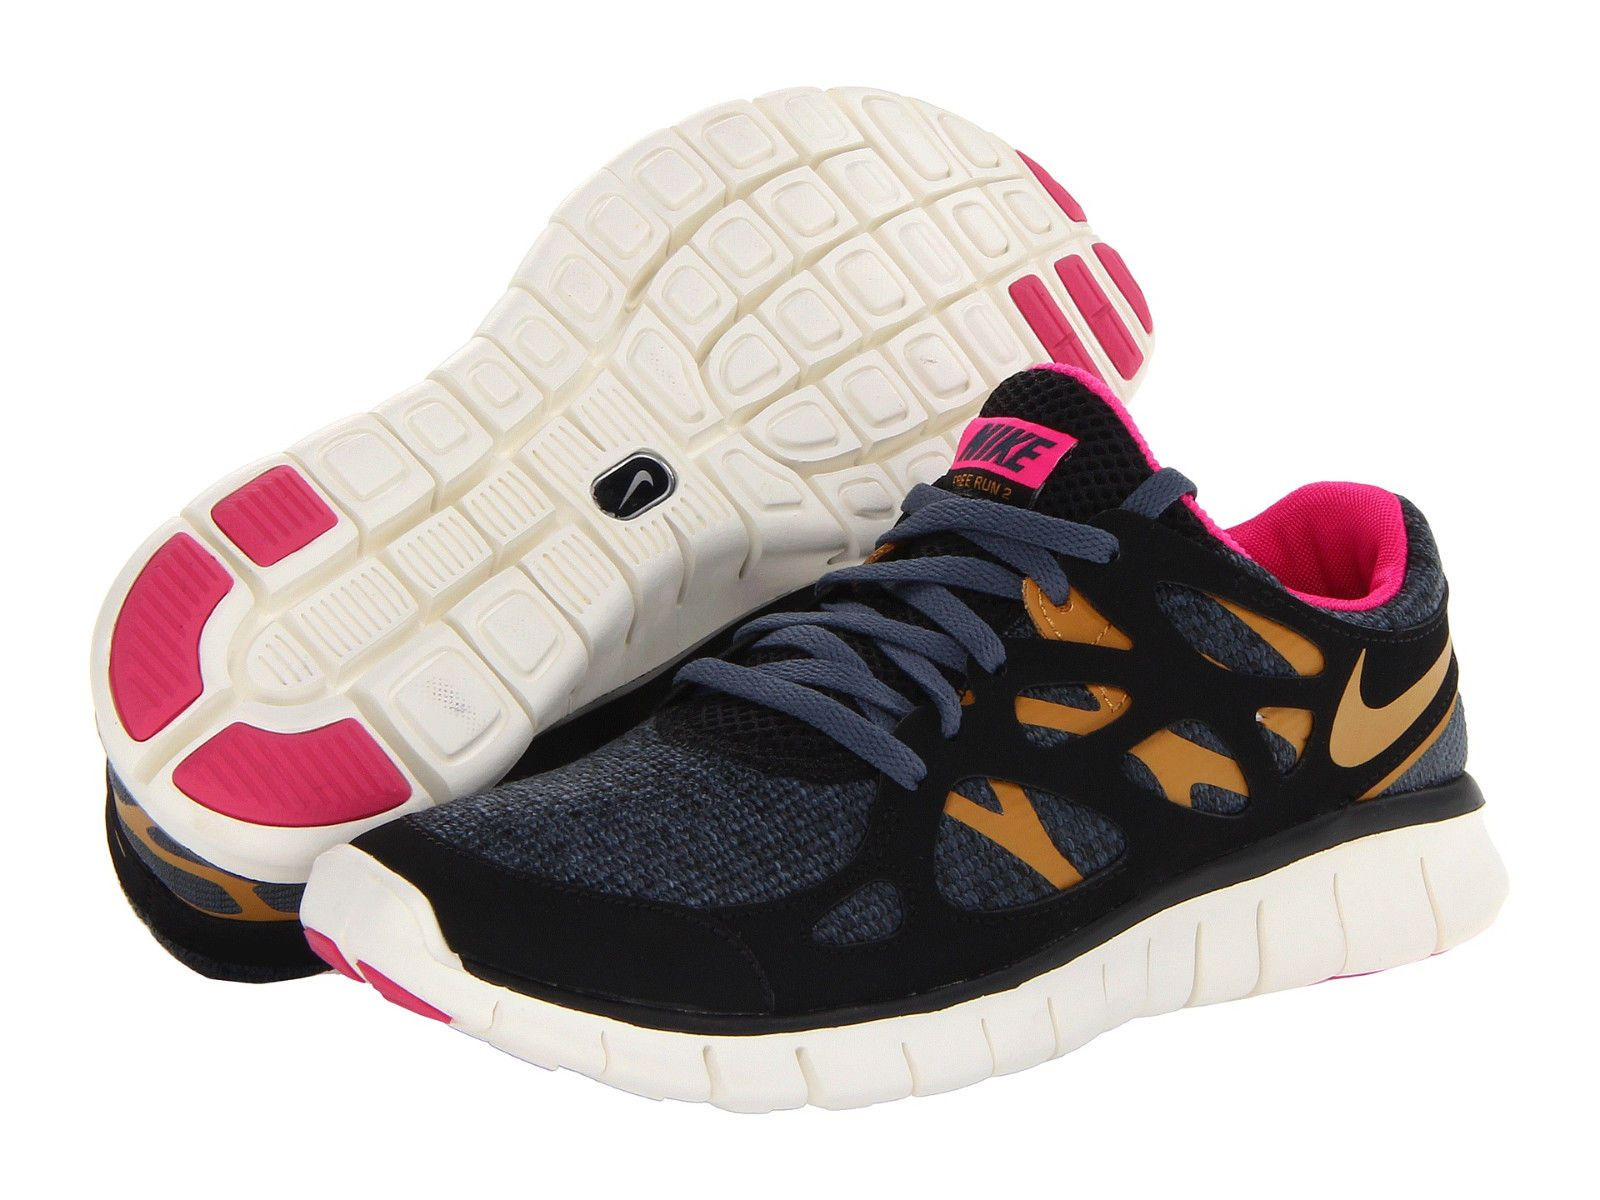 a600a2284dd44 NEW!!~WOMENS NIKE FREE RUN 2 EXT TRAINER RUNNING SHOES~RARE COLOR ...